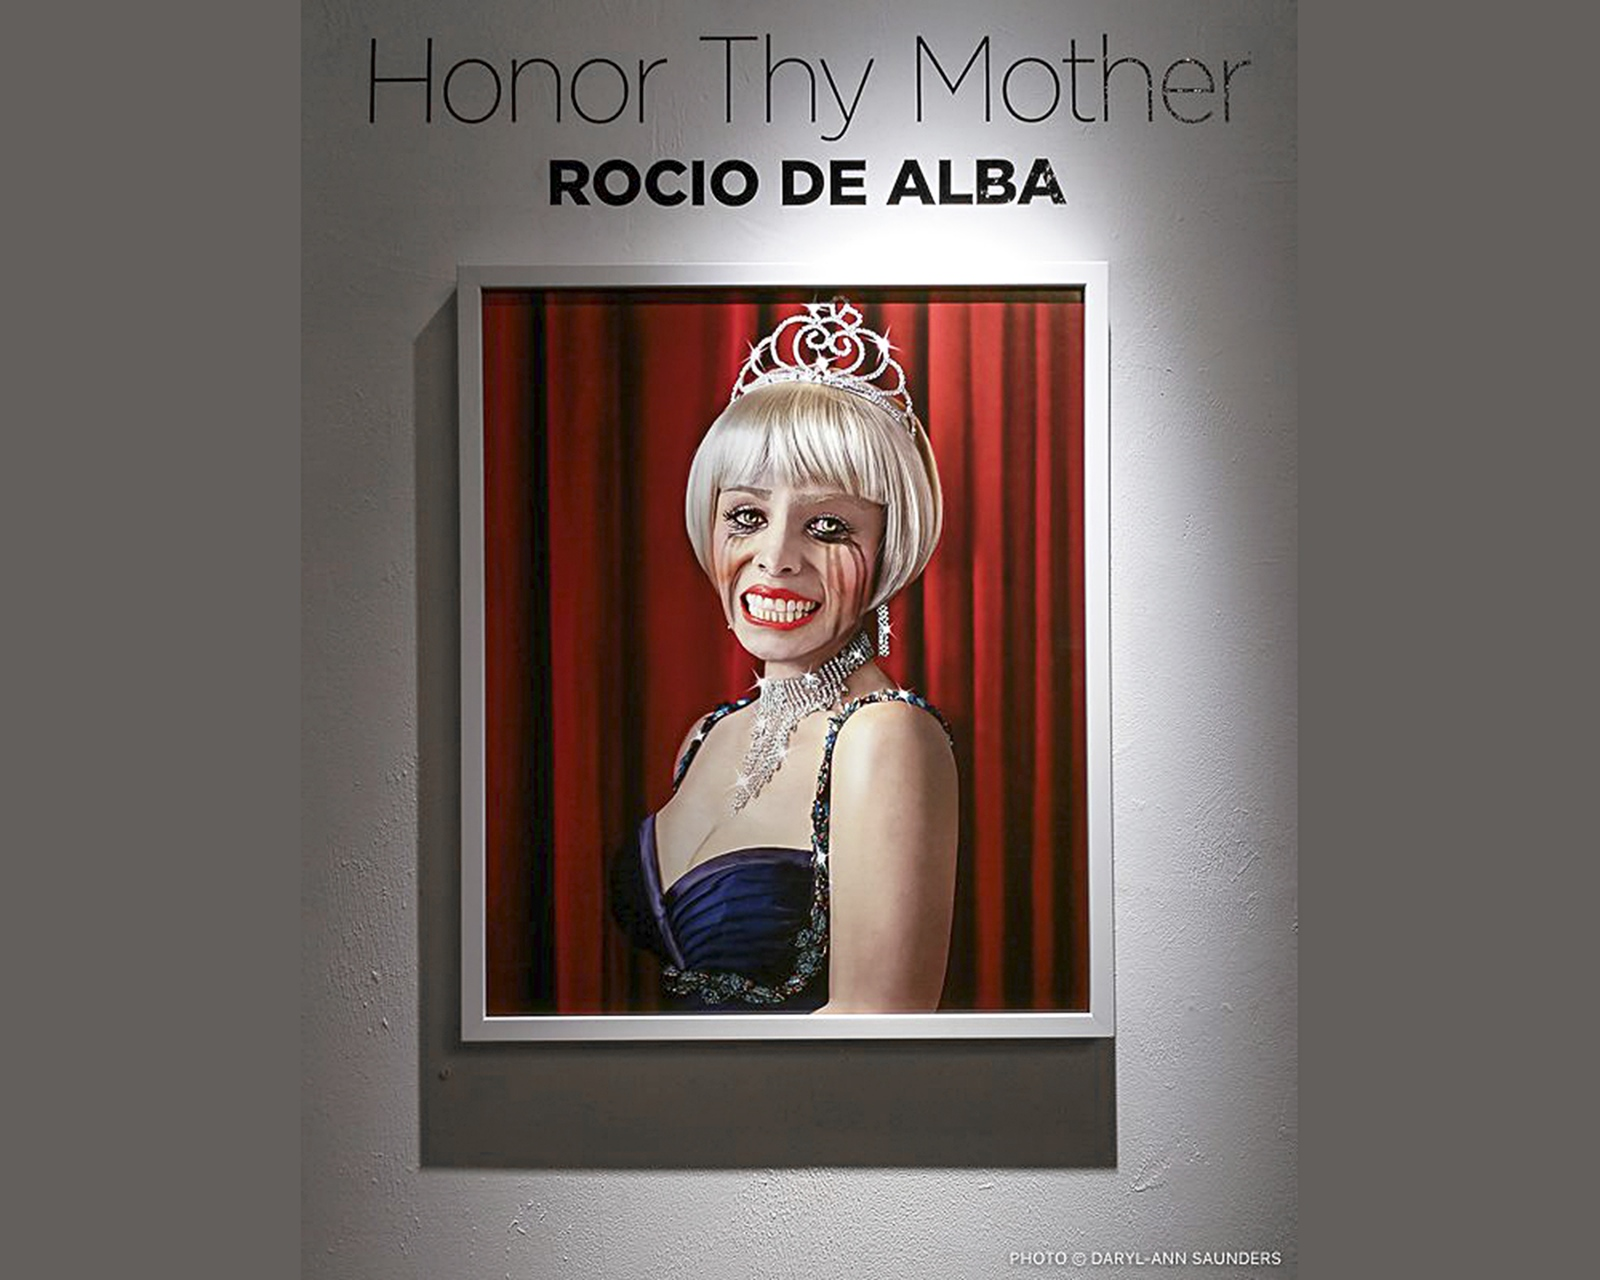 Alba Photographie Rocio De Alba Honor Thy Mother